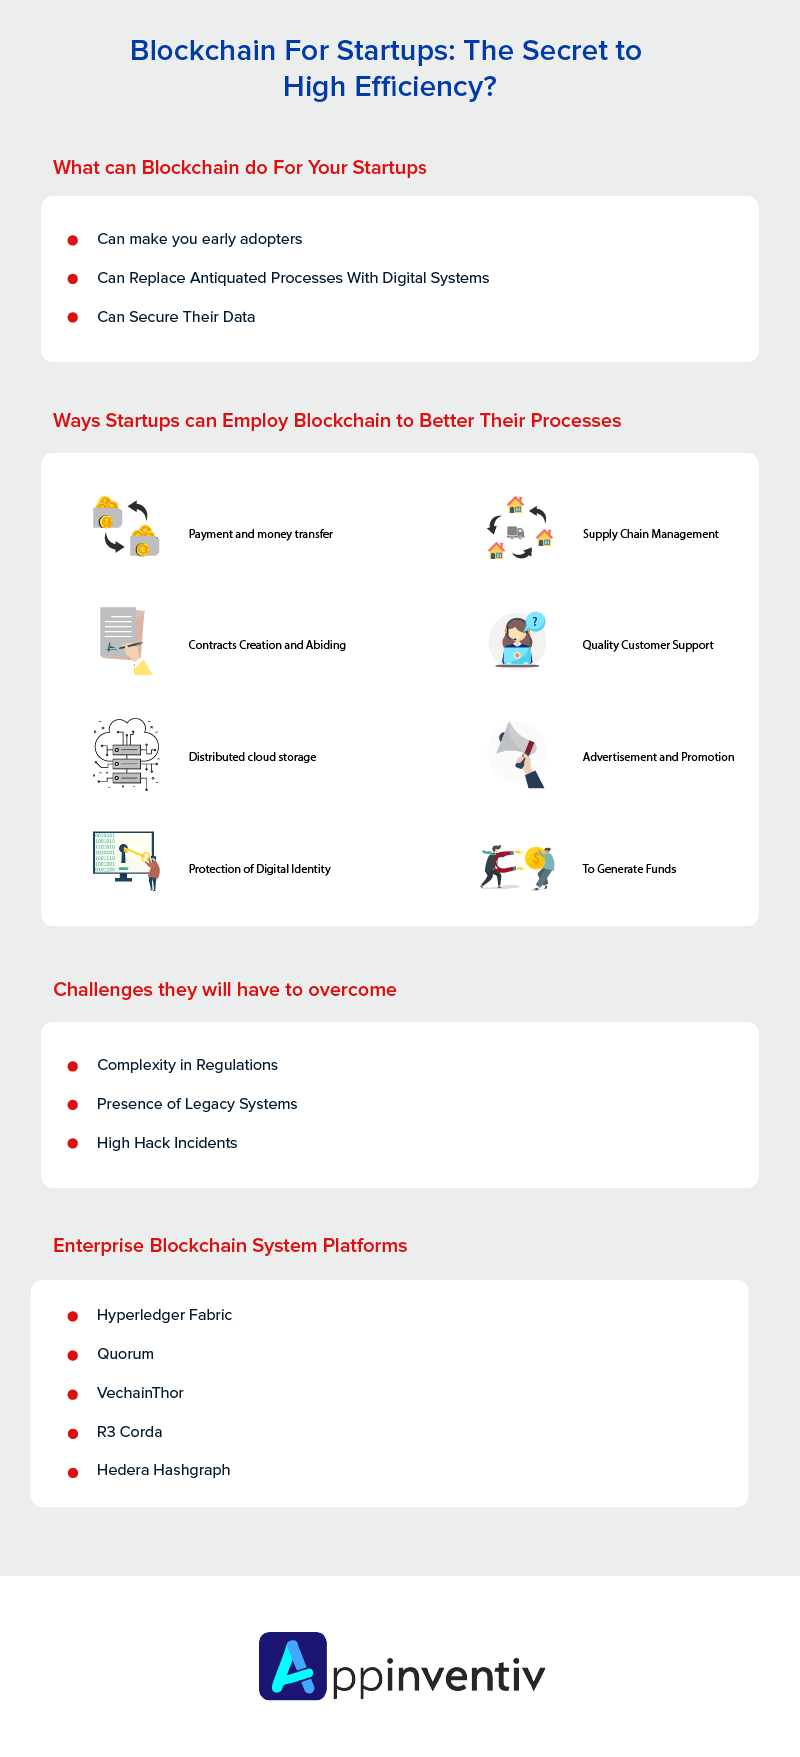 Blockchain For Startups - The Secret to High Efficiency